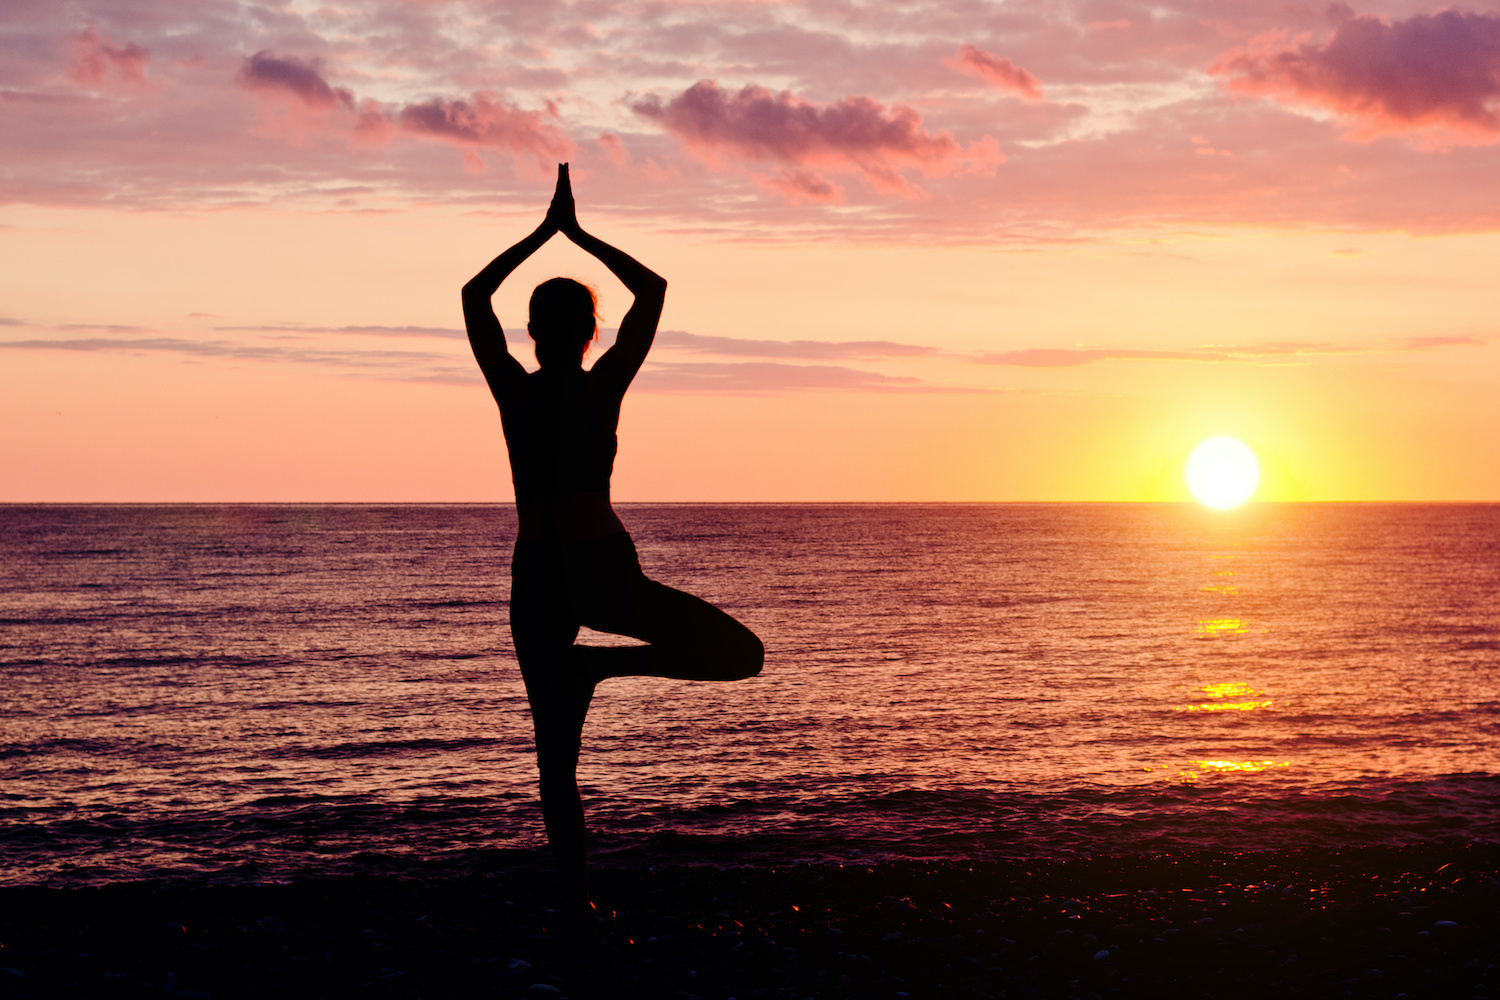 Woman at sunset practicing yoga. Seashore, silhouette